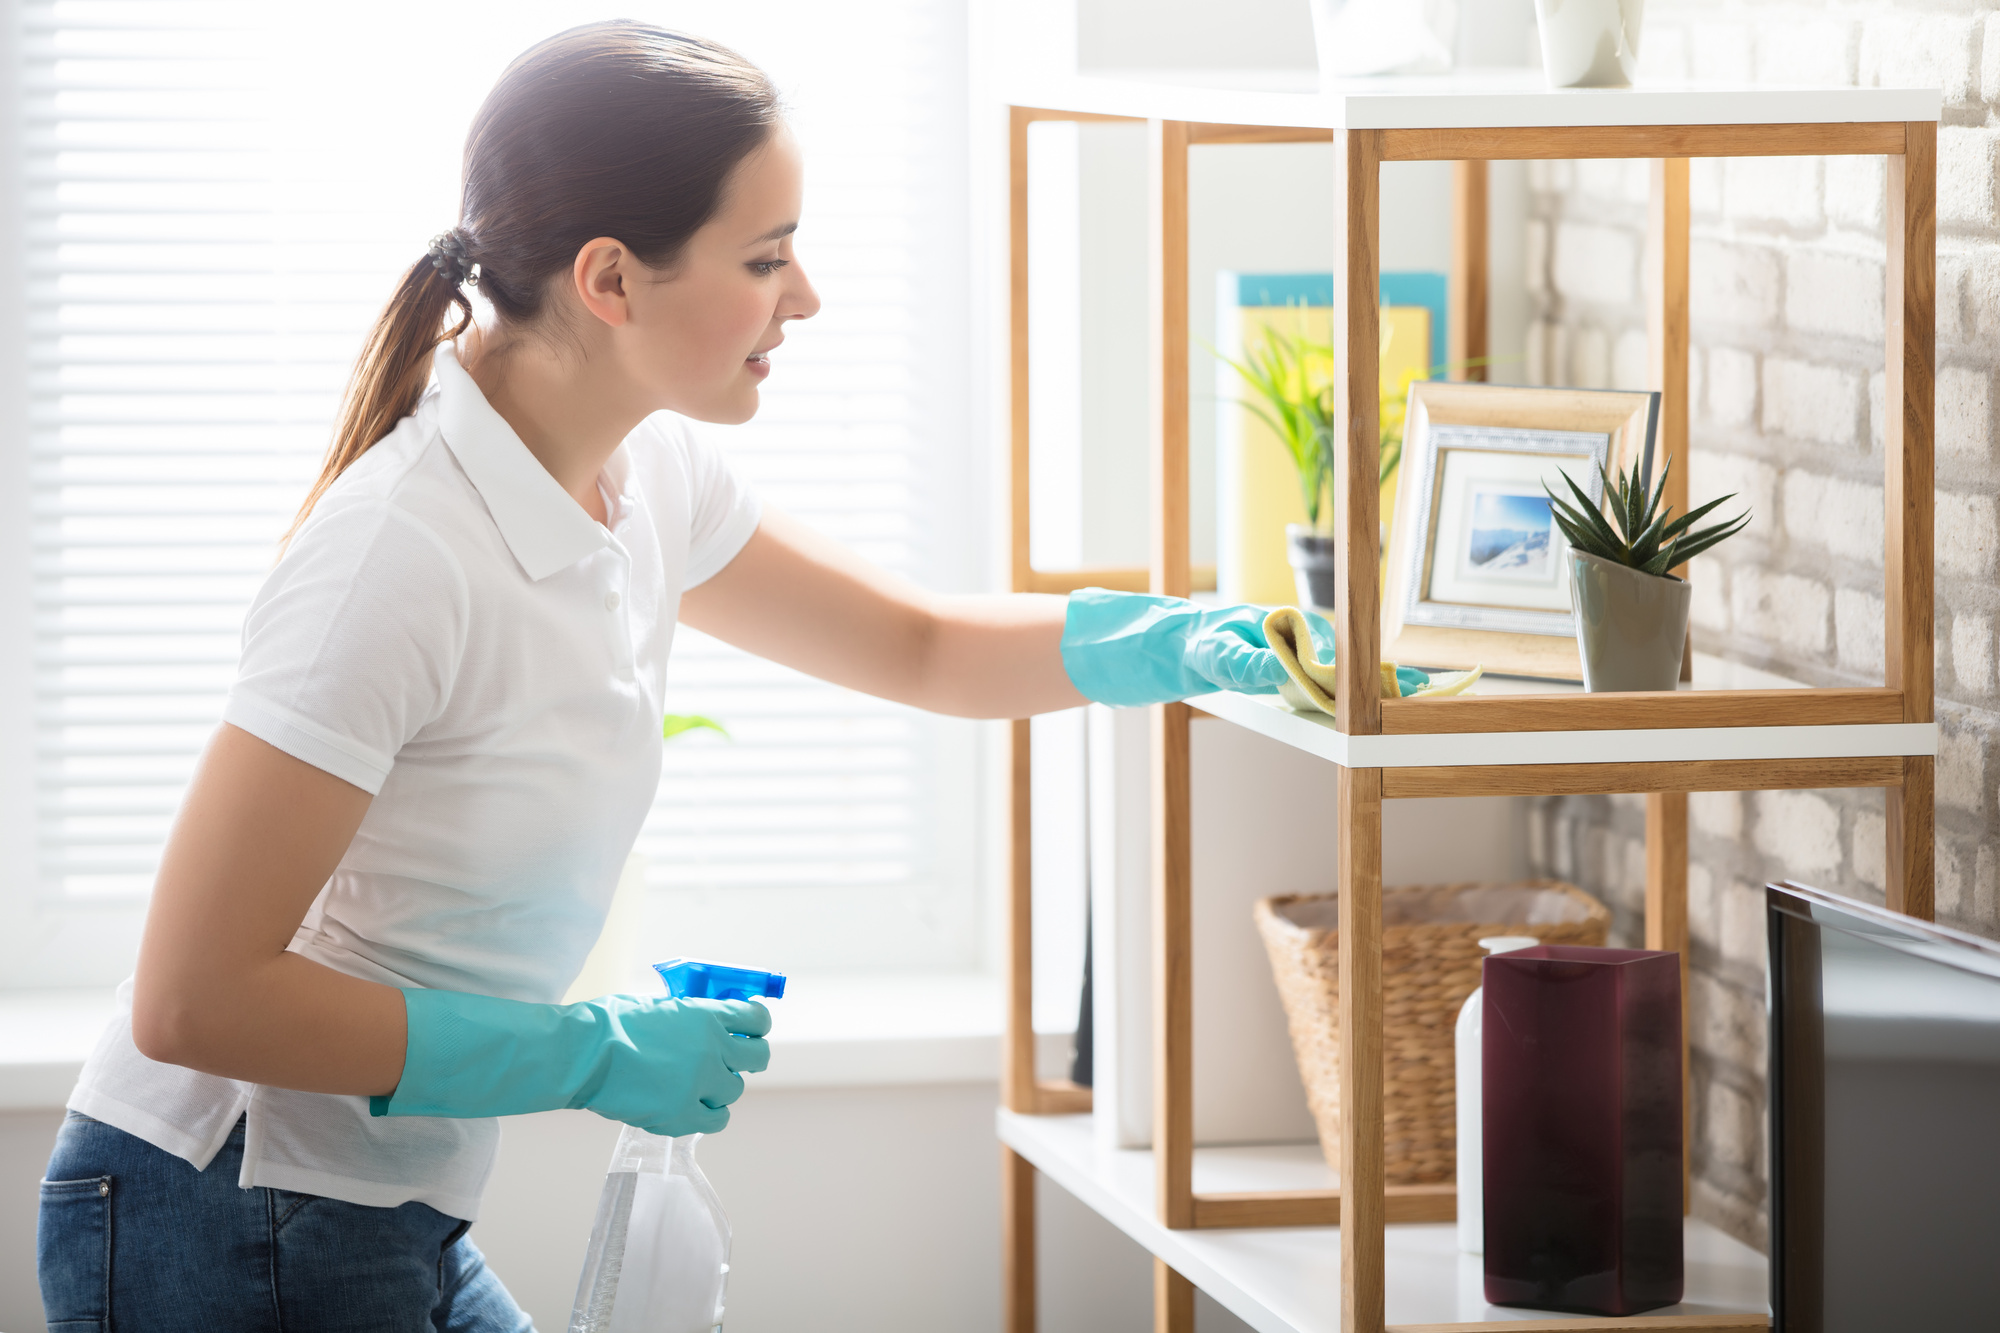 Green House Cleaning | Golden Maid